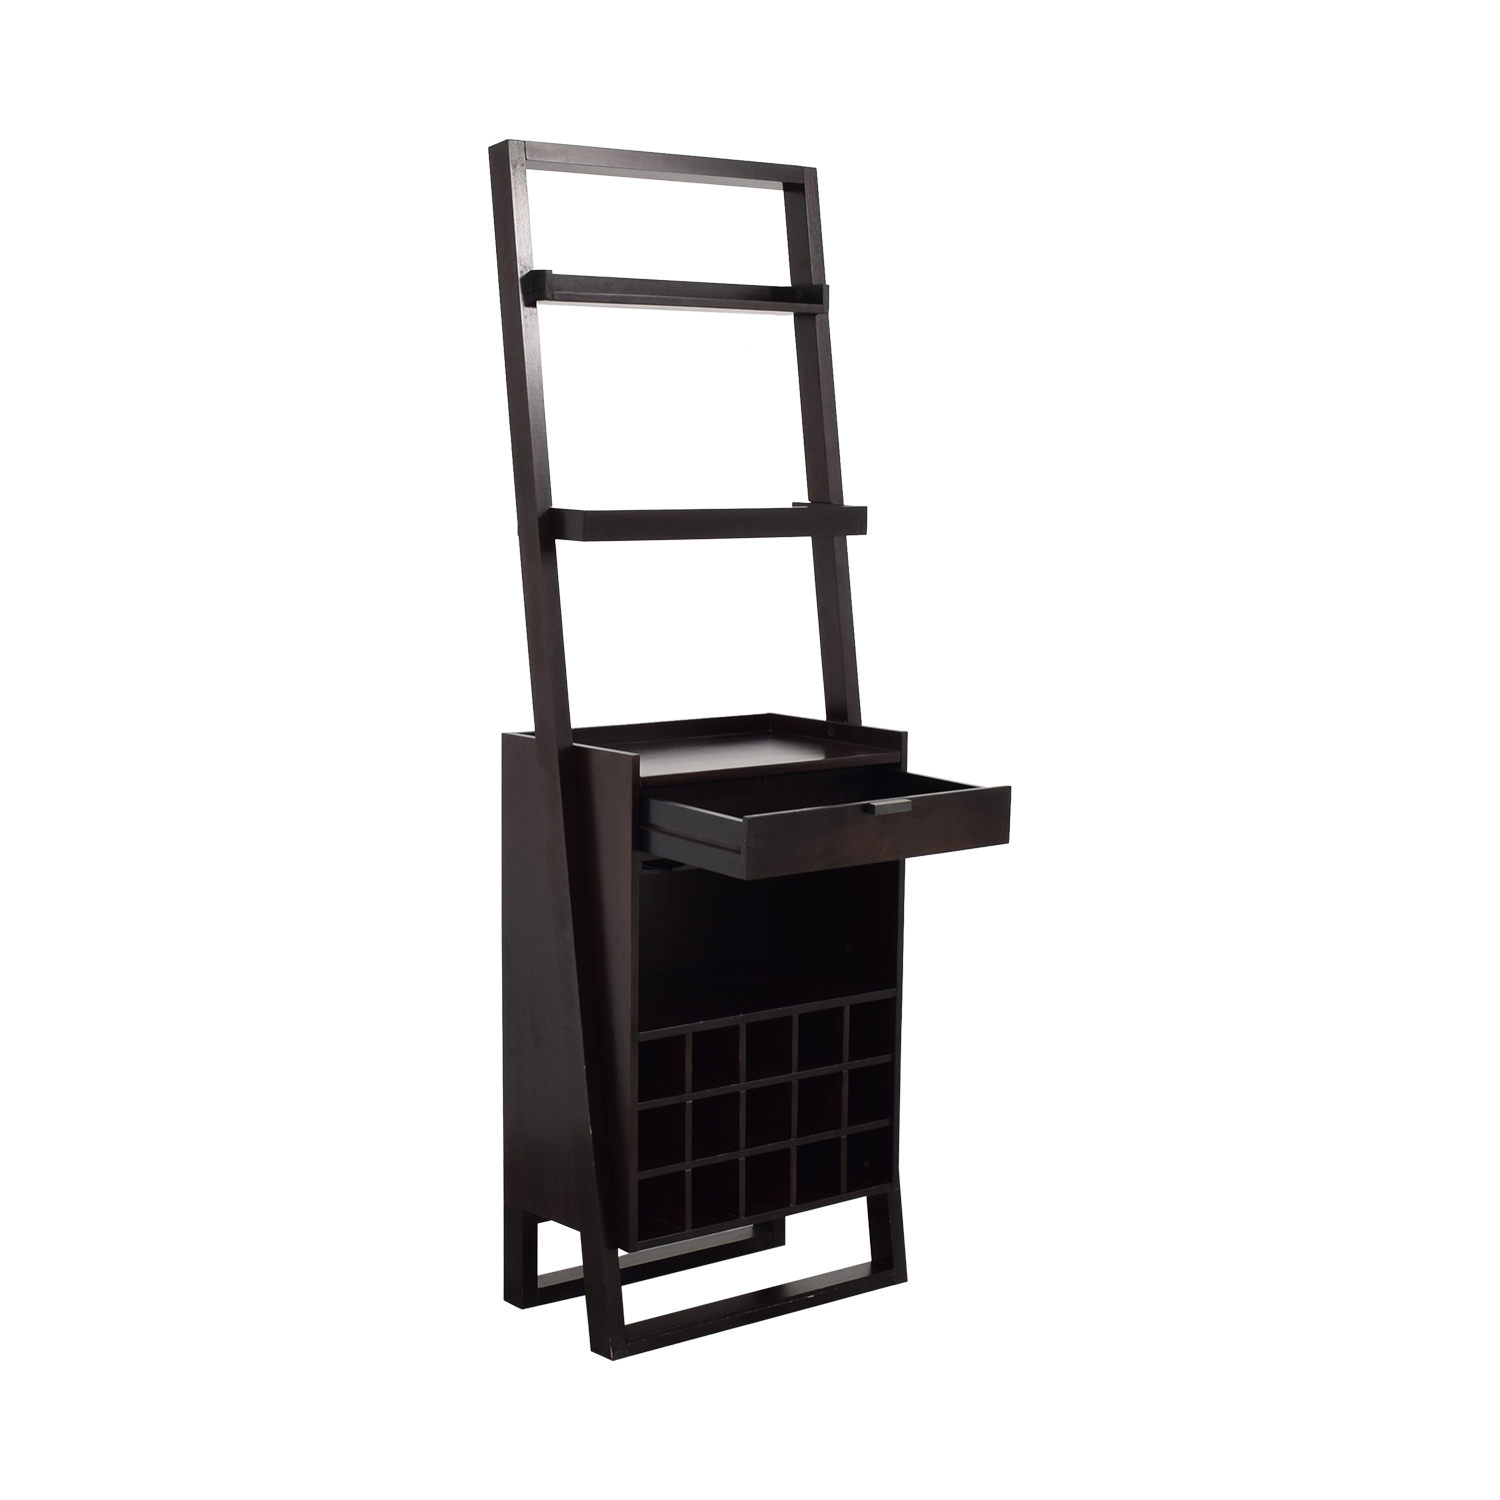 buy Crate & Barrel Sloane Leaning Wine Bar Crate & Barrel Bookcases & Shelving